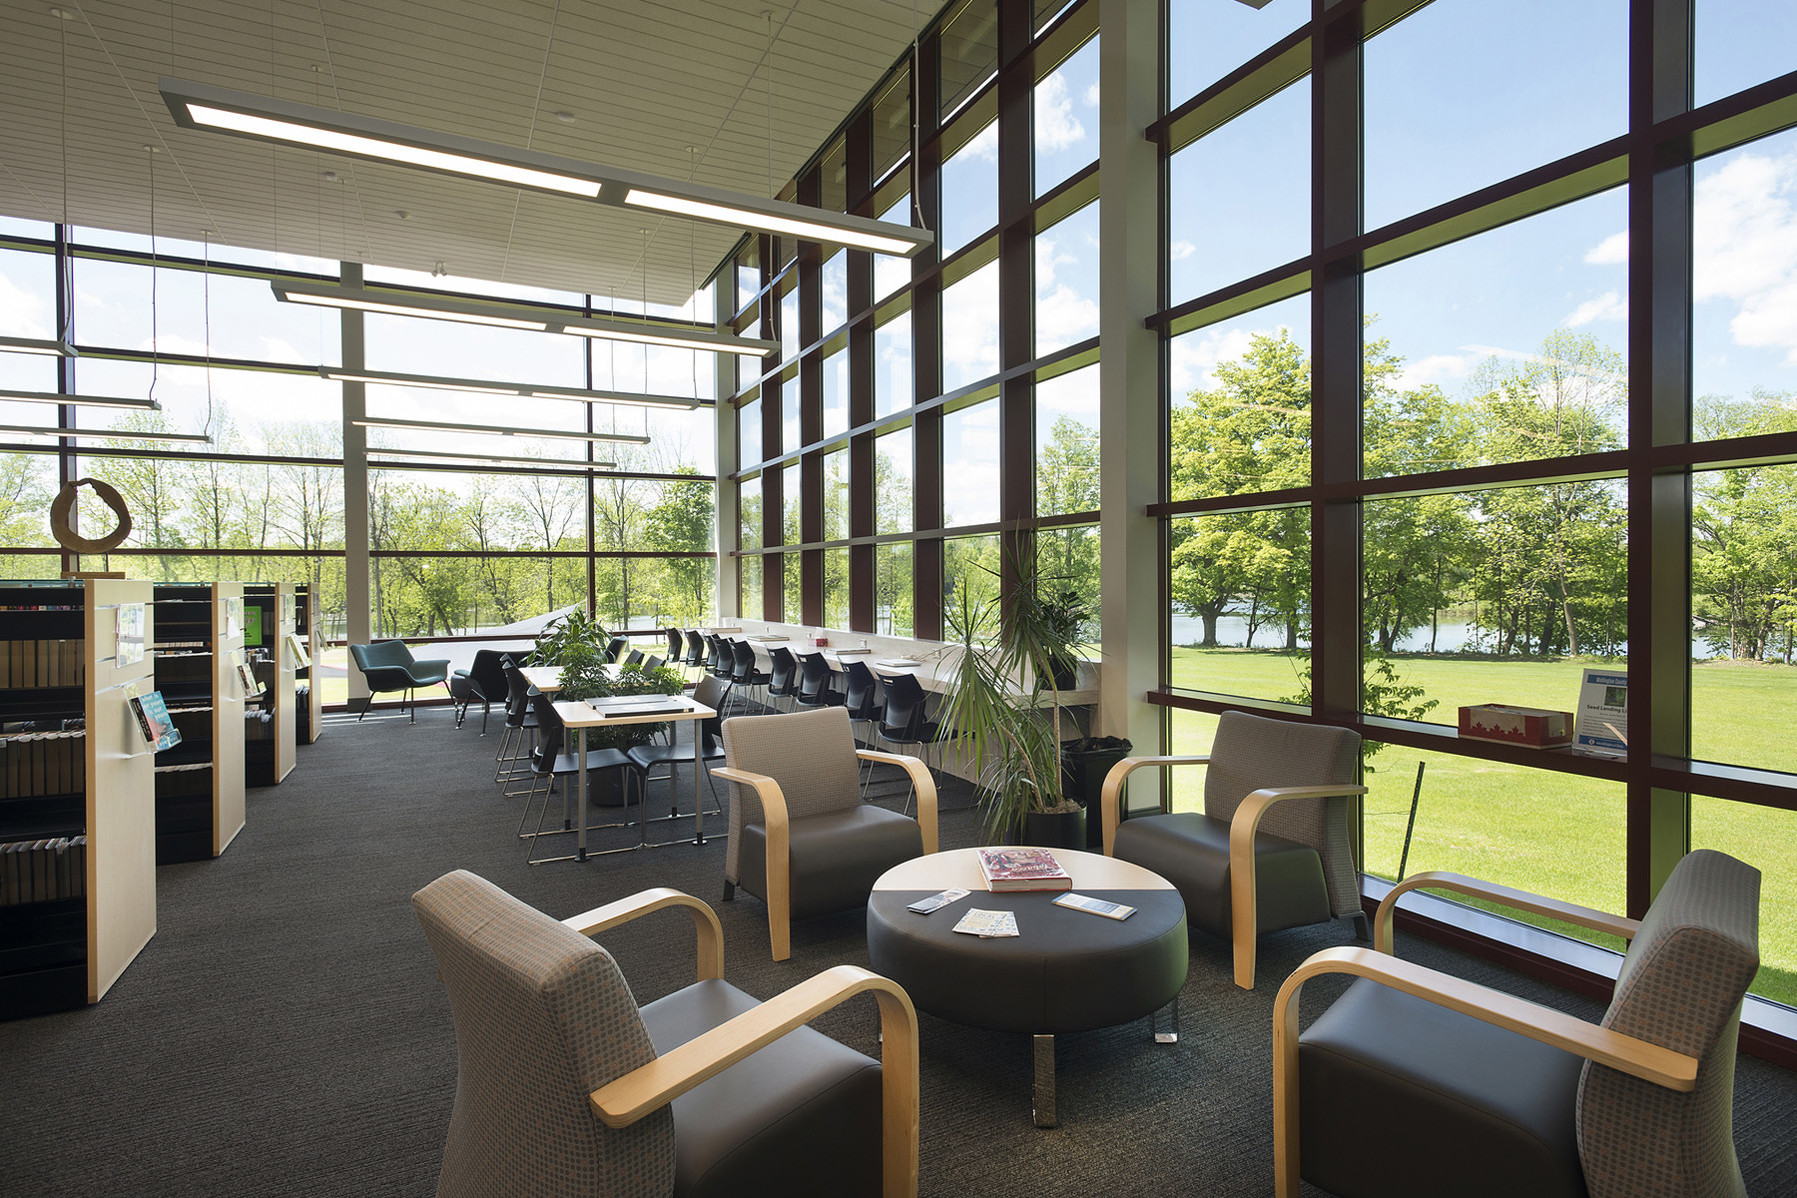 Glazed walls with steel frames with lounge seating, group study and individual study bench seating in bright window with views of trees